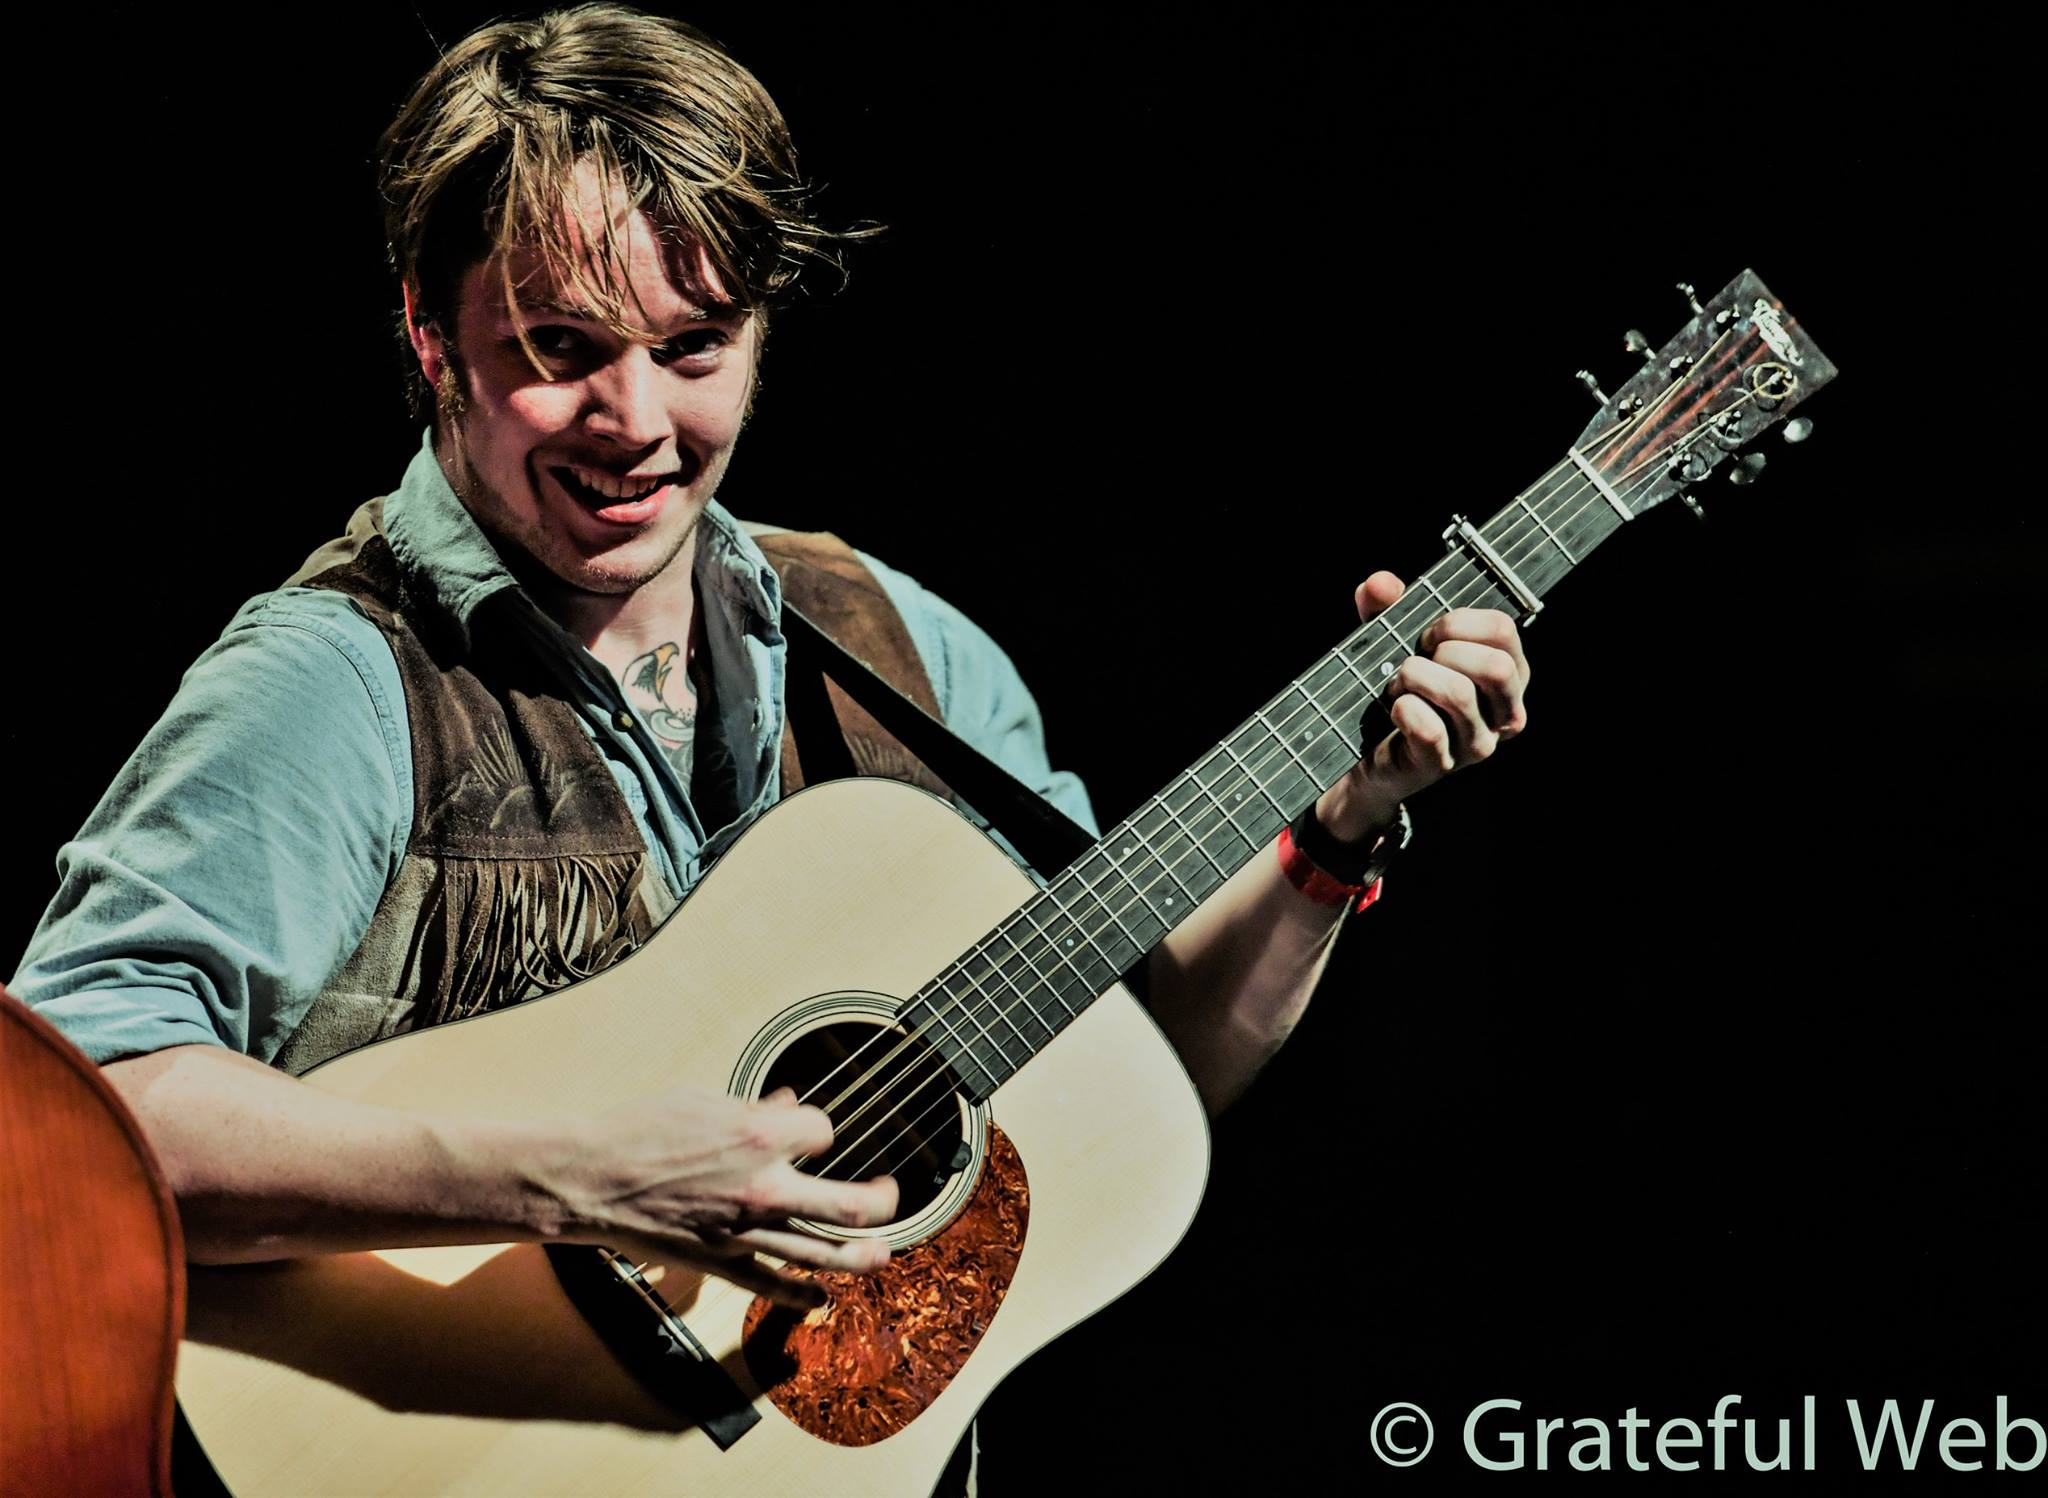 Grateful Web Interview with Billy Strings